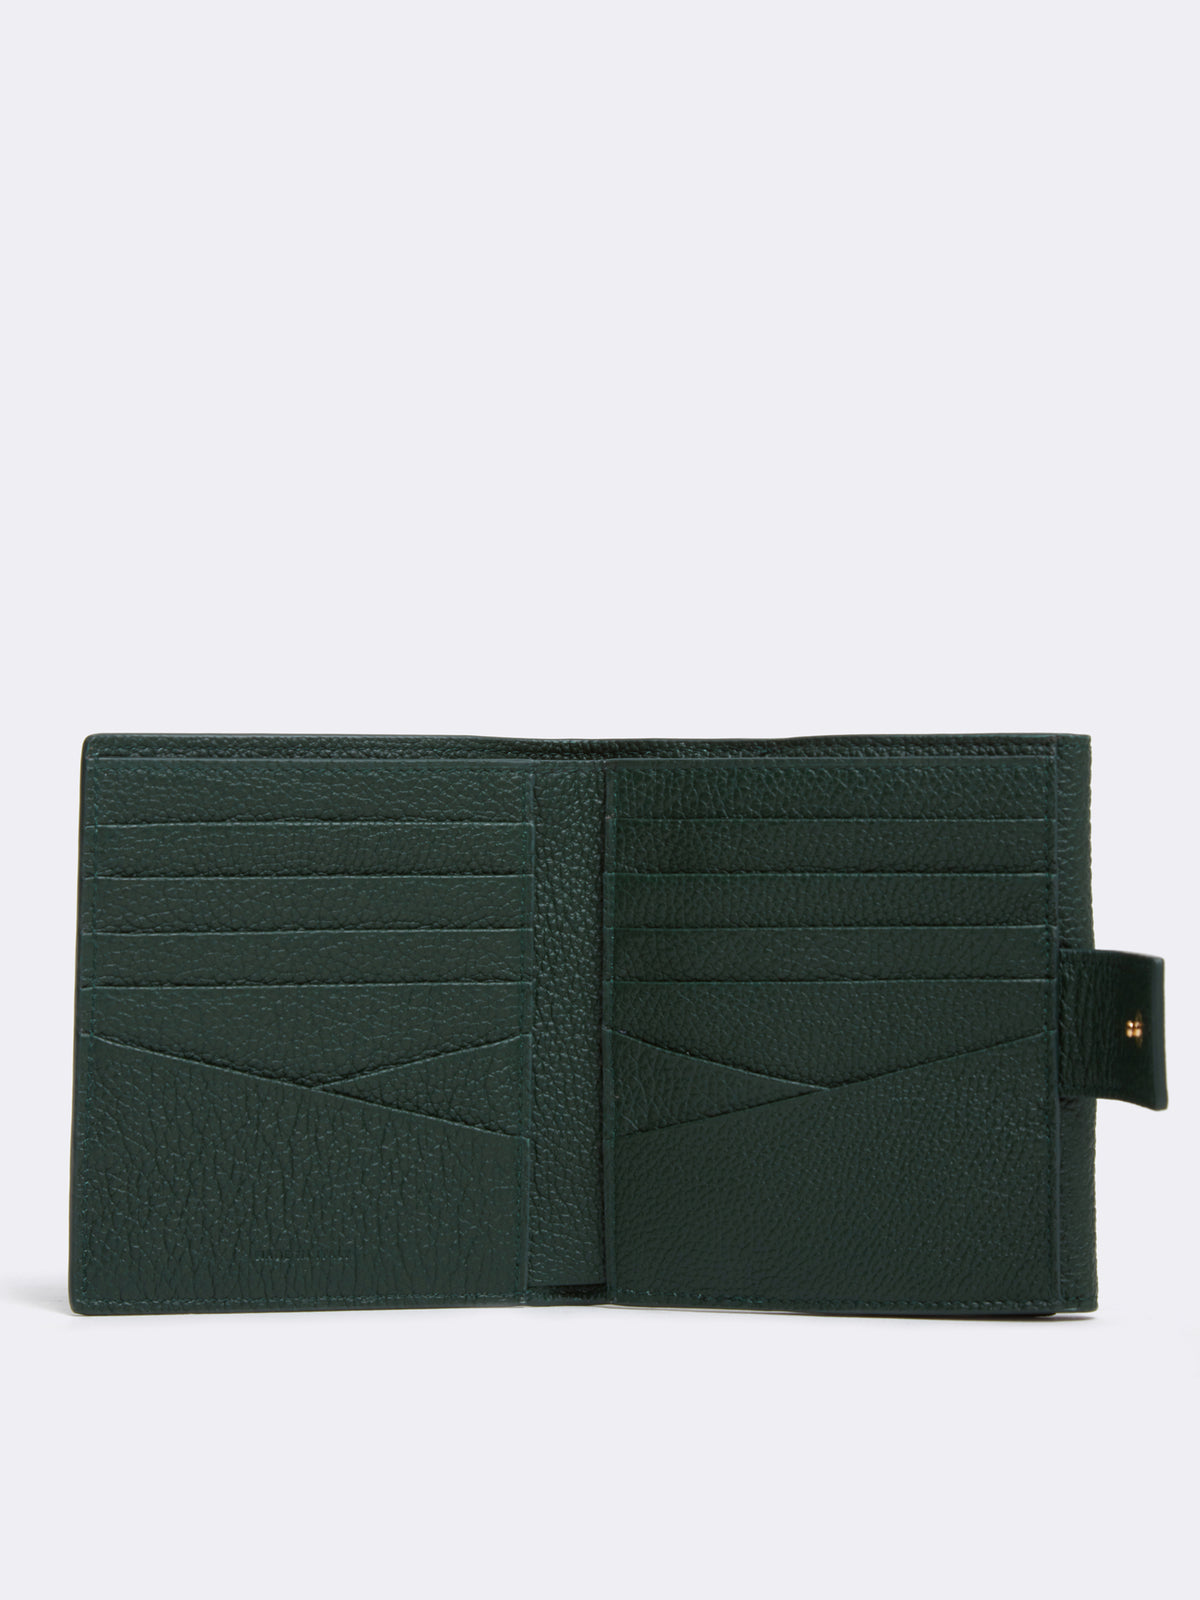 Mark Cross Hadley Leather French Wallet Tumbled Grain Evergreen Interior